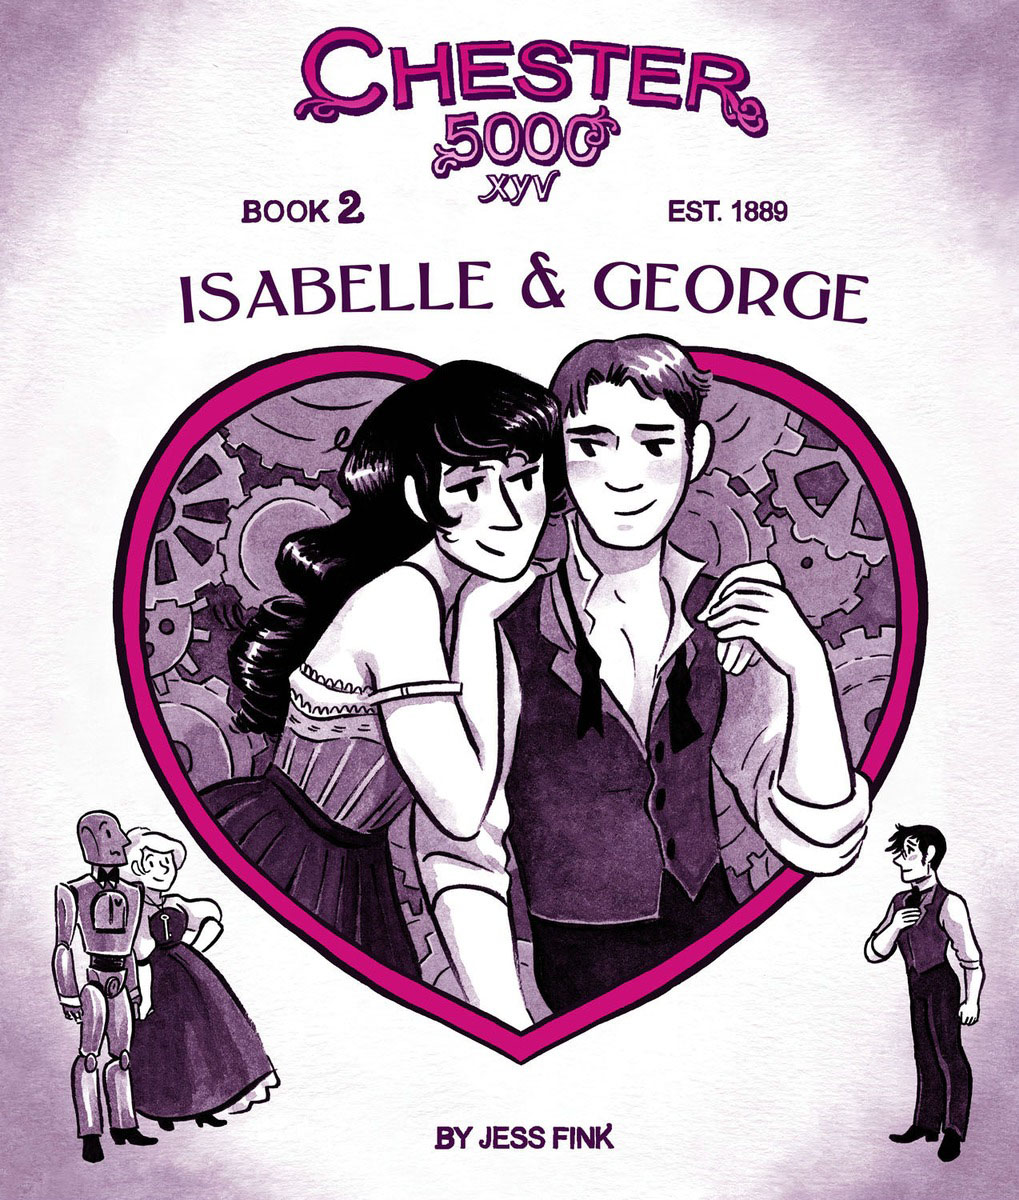 Chester 5000 (Book 2): Isabelle & George chester 07925